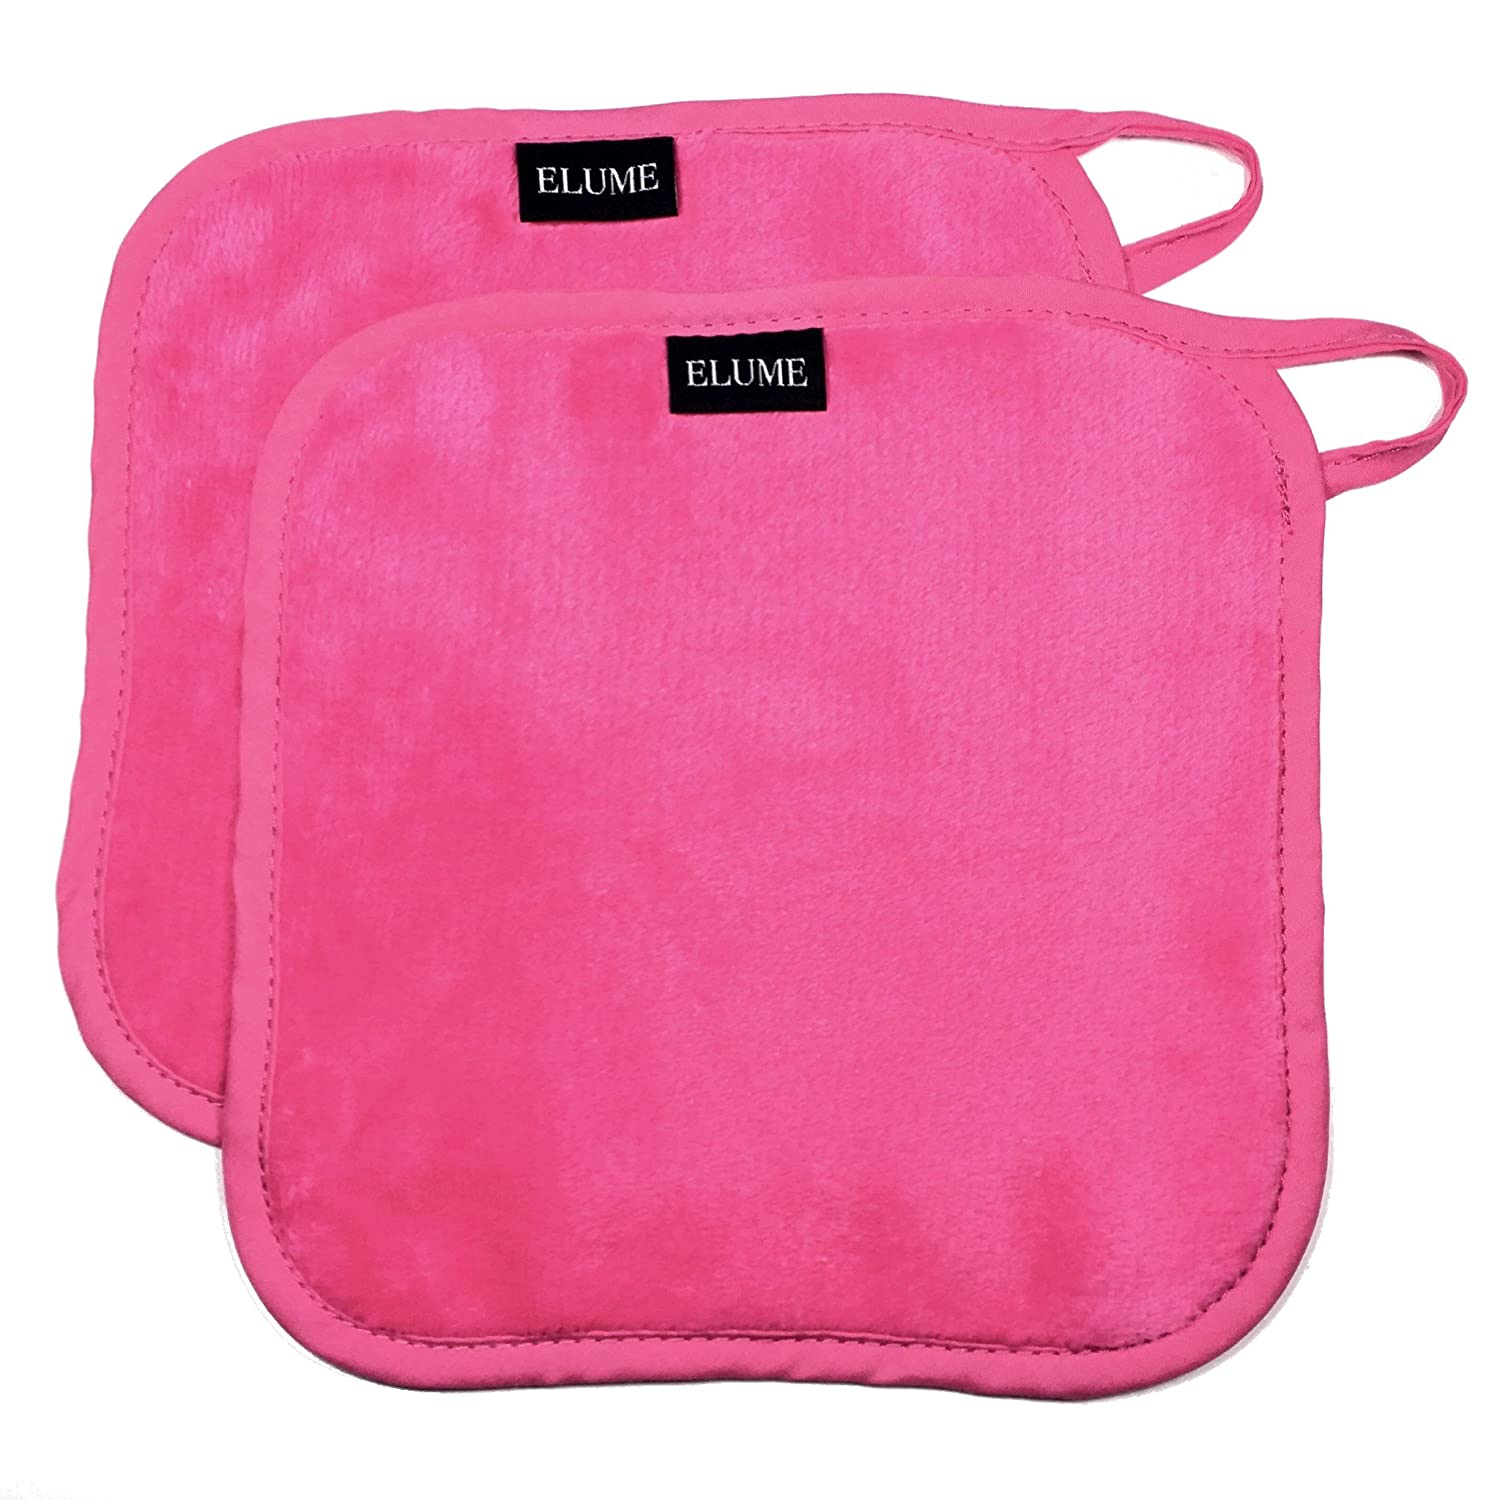 ELUME Makeup Remover Face Cloths are Velvety Soft to Gently Remove Cosmetics while Cleaning the Skin, Includes Small Zip Travel Pouch, 2 Pack (Pink)